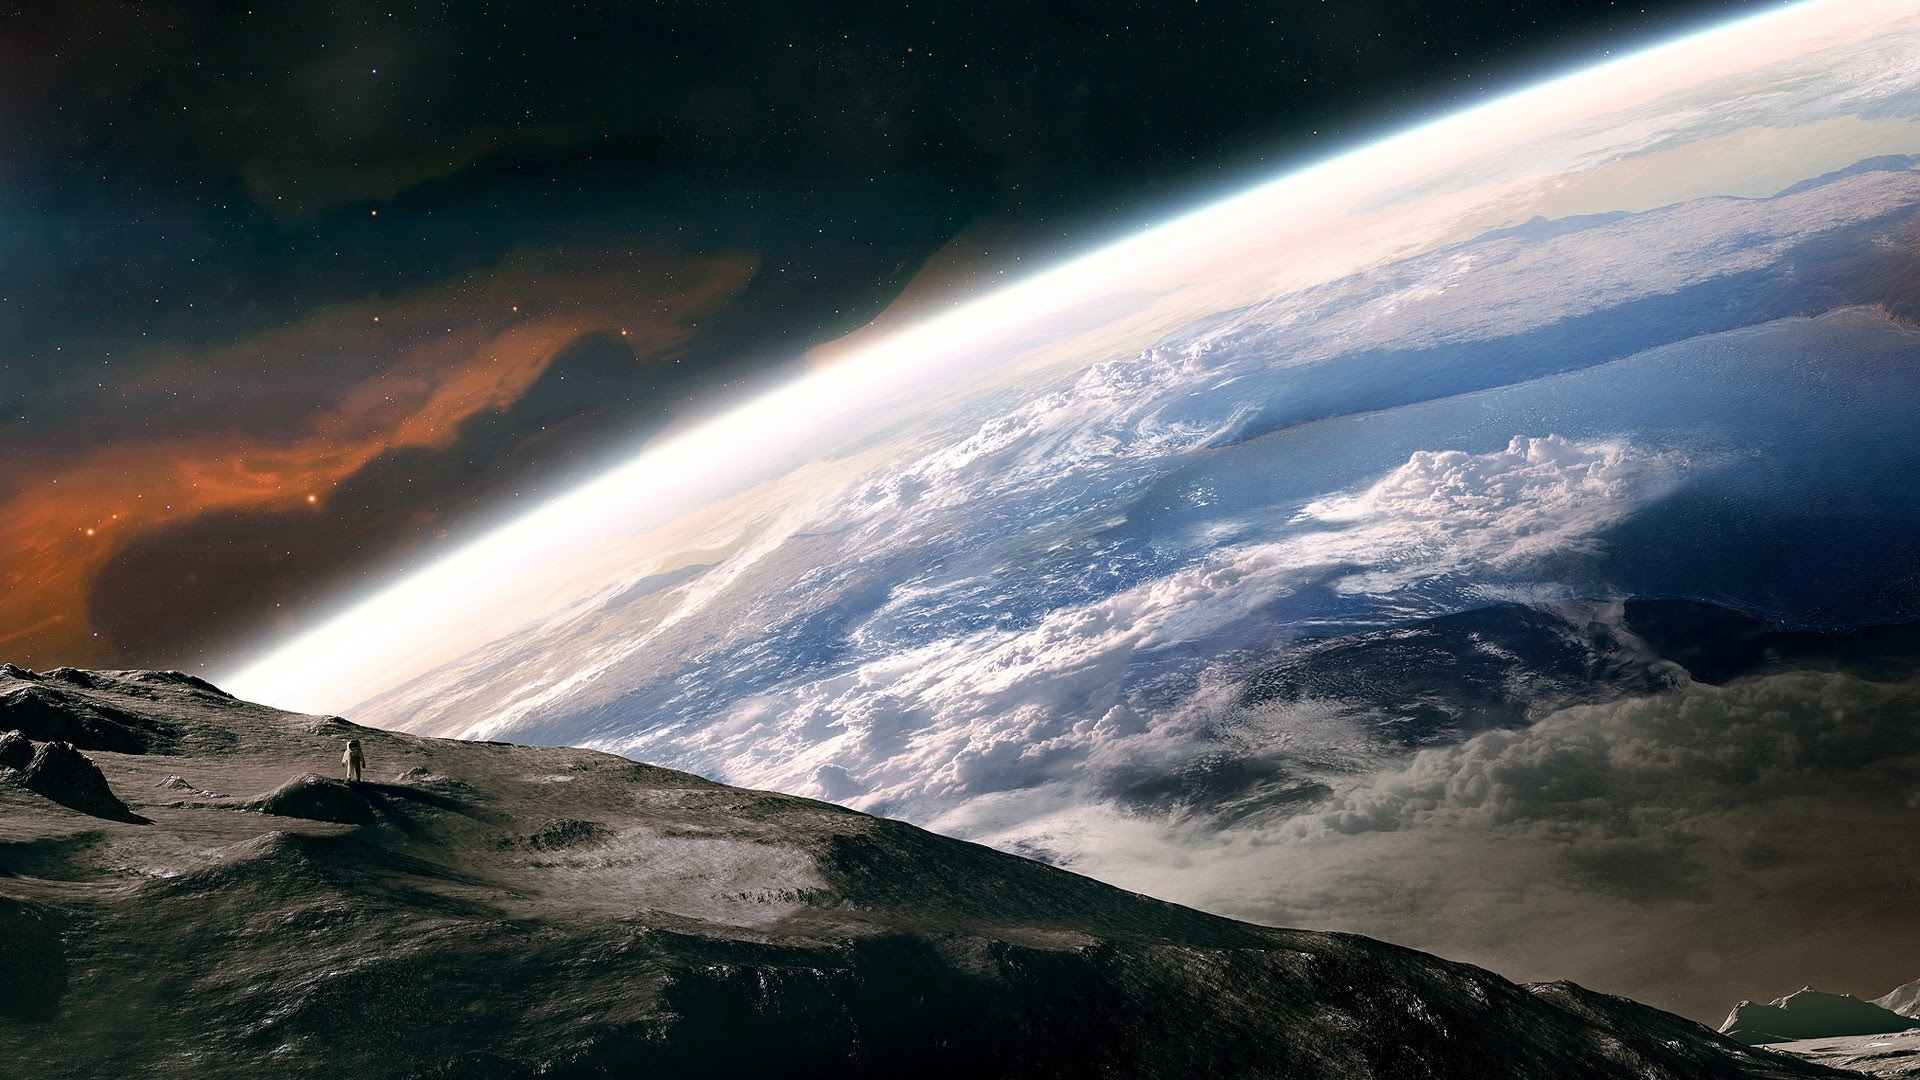 View Earth From Space Hd Wallpaper Wallpaperfx 1920x1080